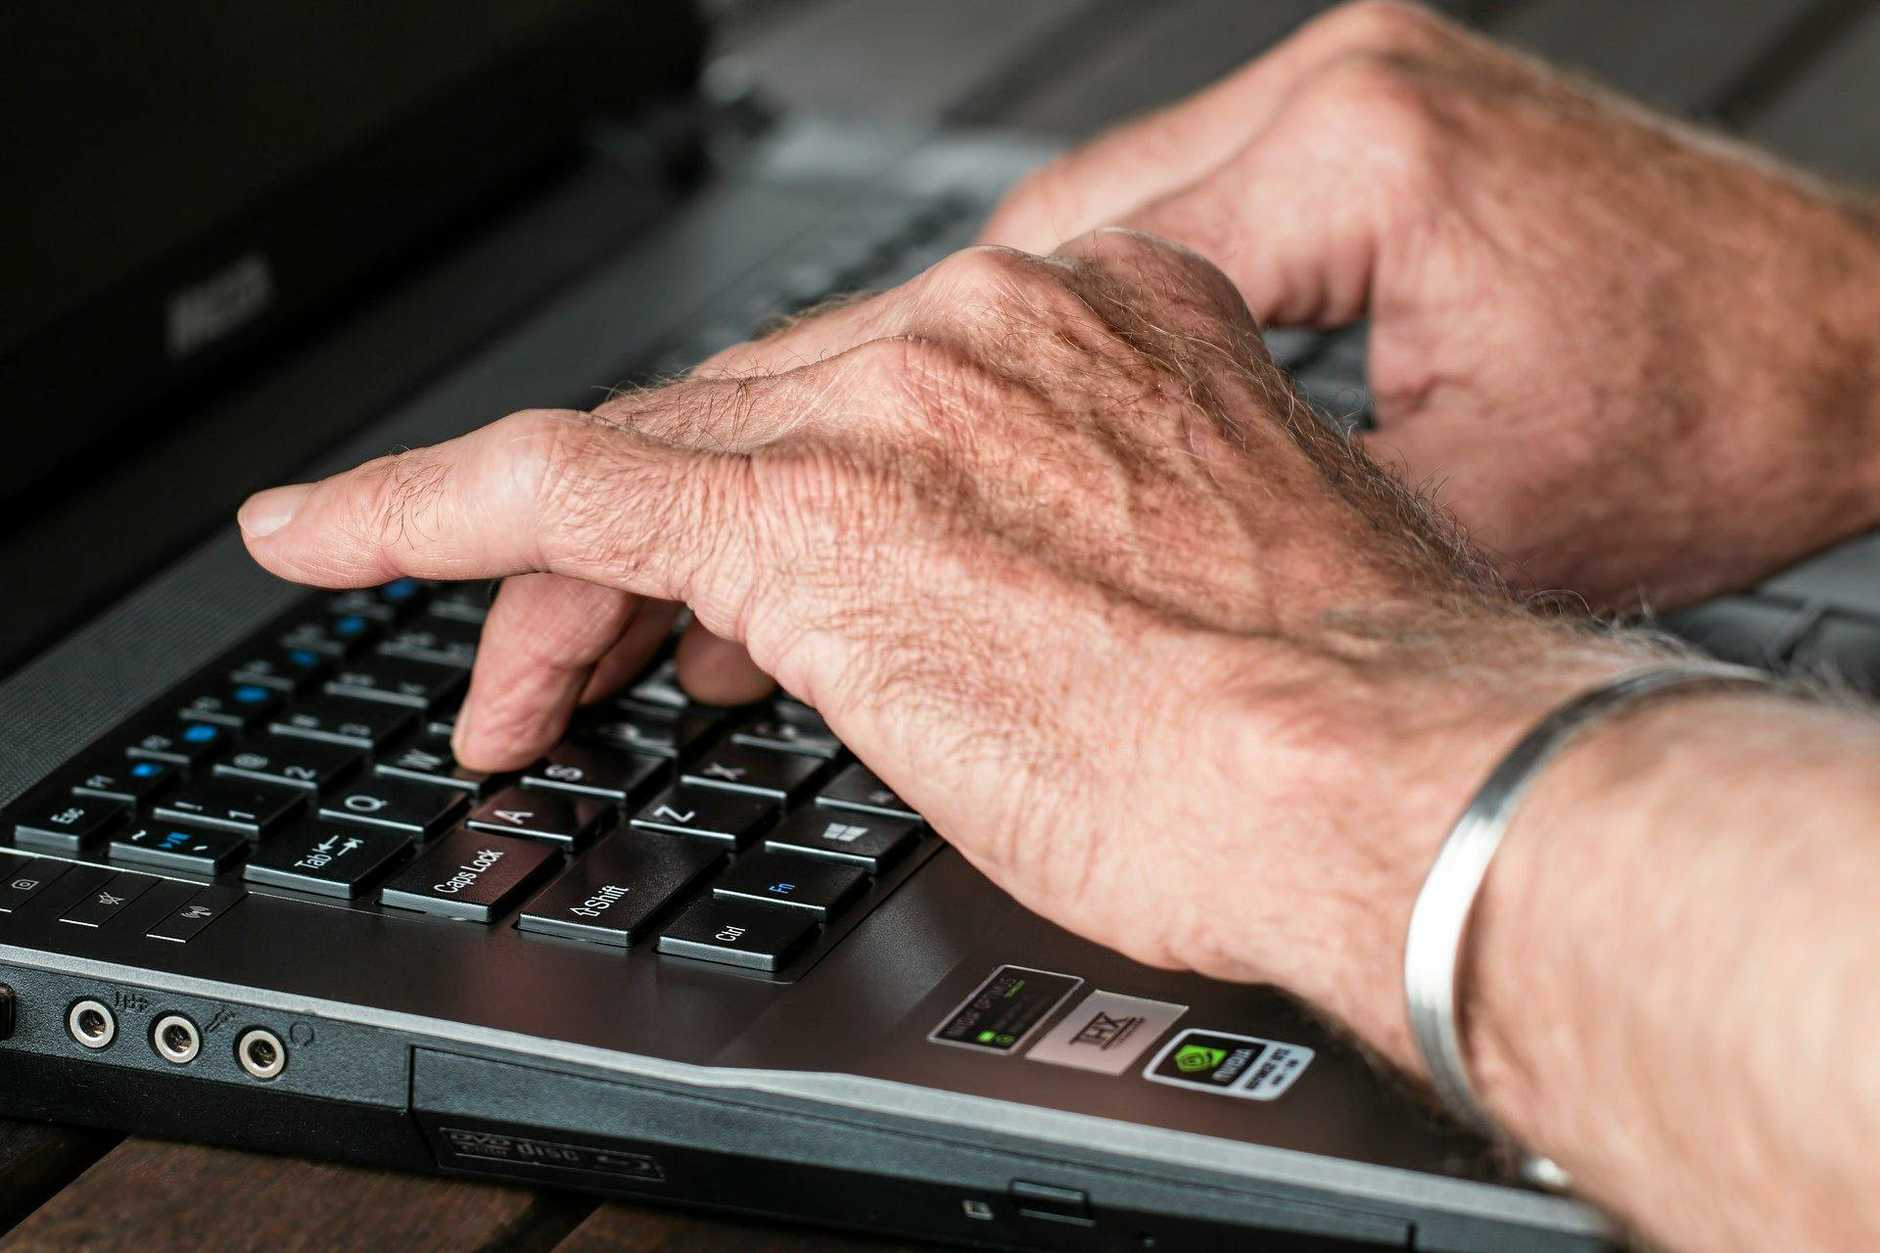 A Sunshine Coast man has fallen victim to a remote access scam, as the ACCC warns of a growing trend in the cyber crime.